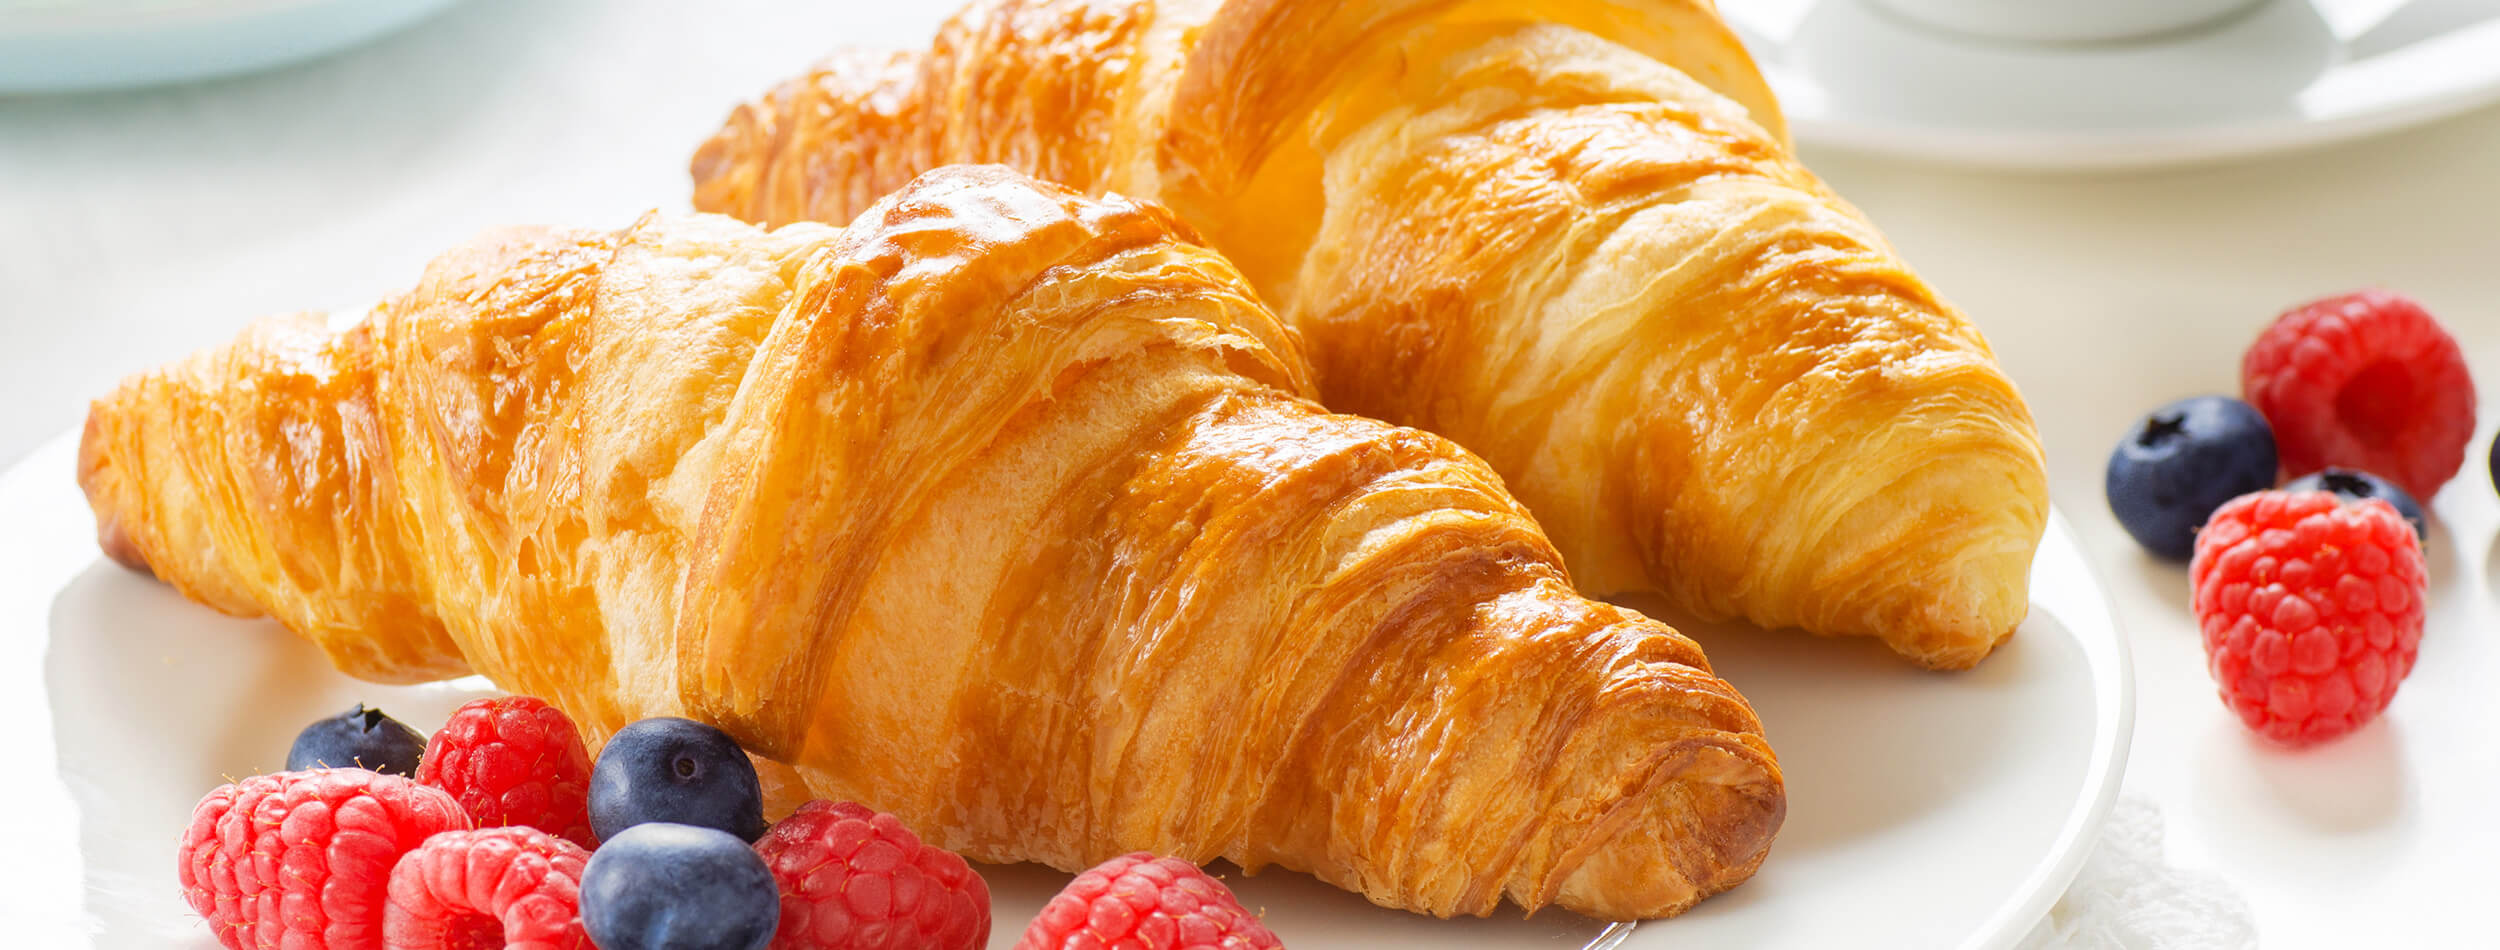 Sep 18, · Many pastry cooks use the double fold to save time. So, instead of doing 6 single folds, they would do 3 book folds. As I experimented with gluten-free puff pastry dough, I found that dough folded in book folds didn't rise quite as much as that folded in single folds.